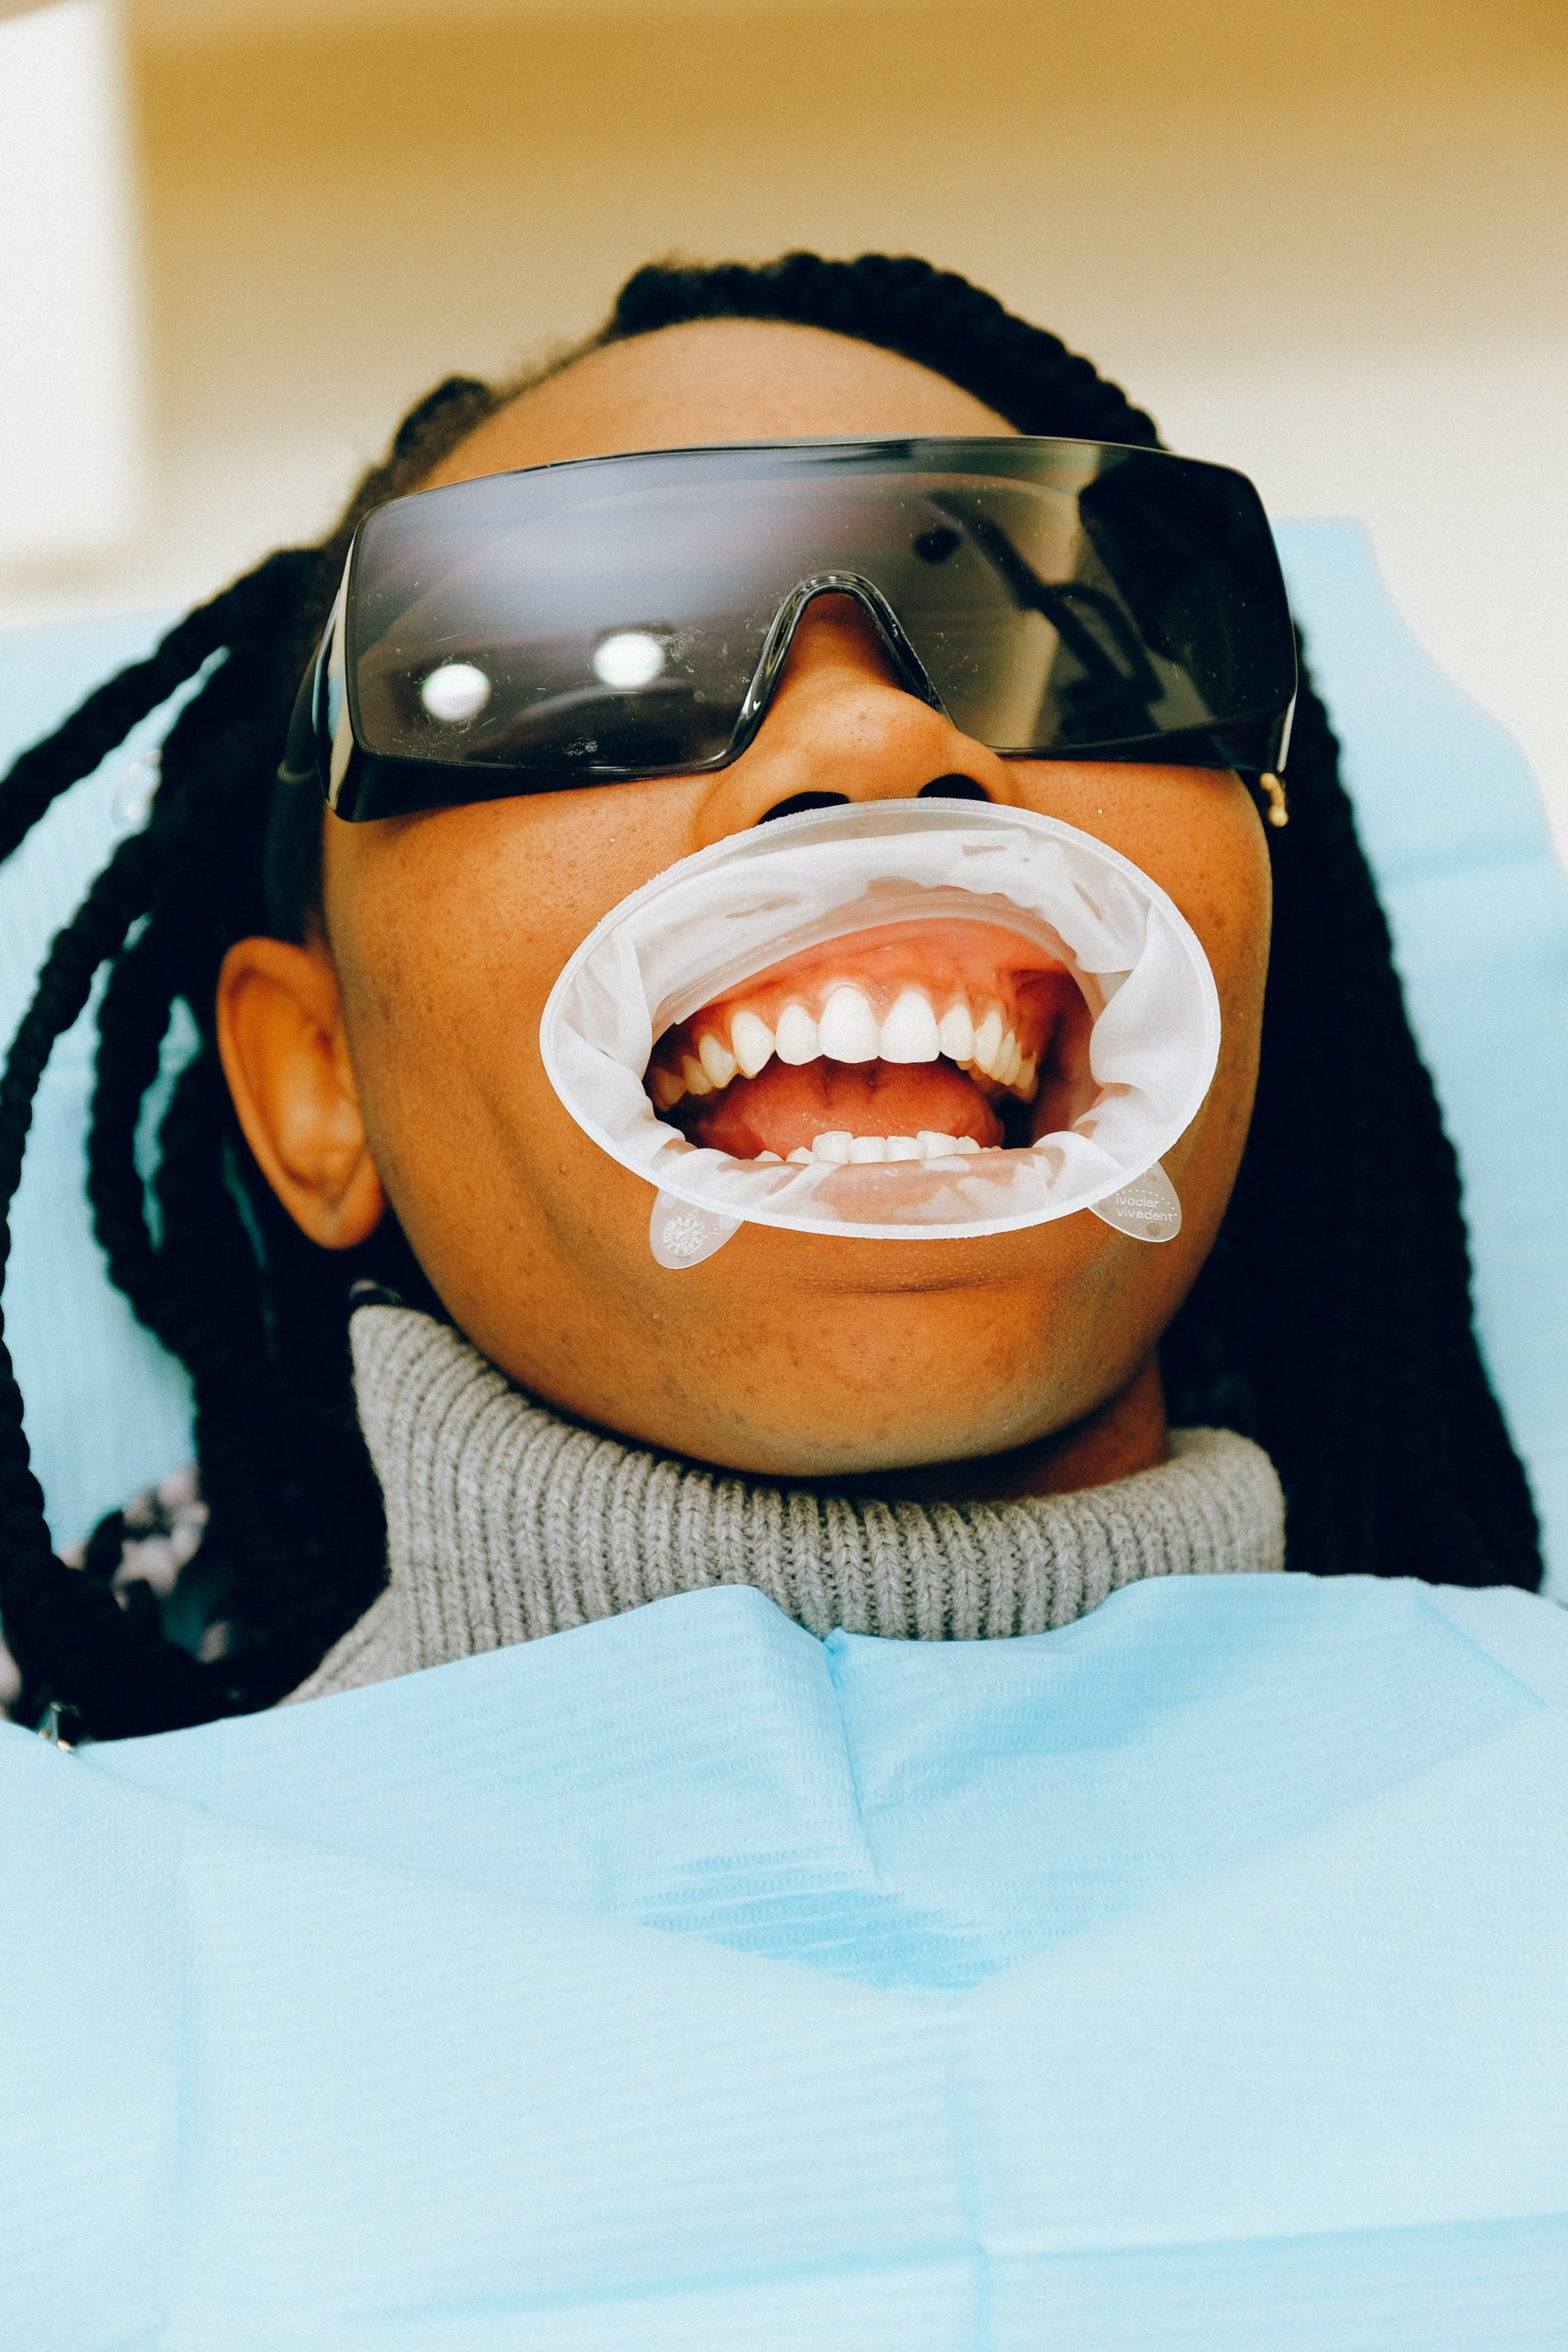 Foods You Should Avoid to Protect Your Teeth